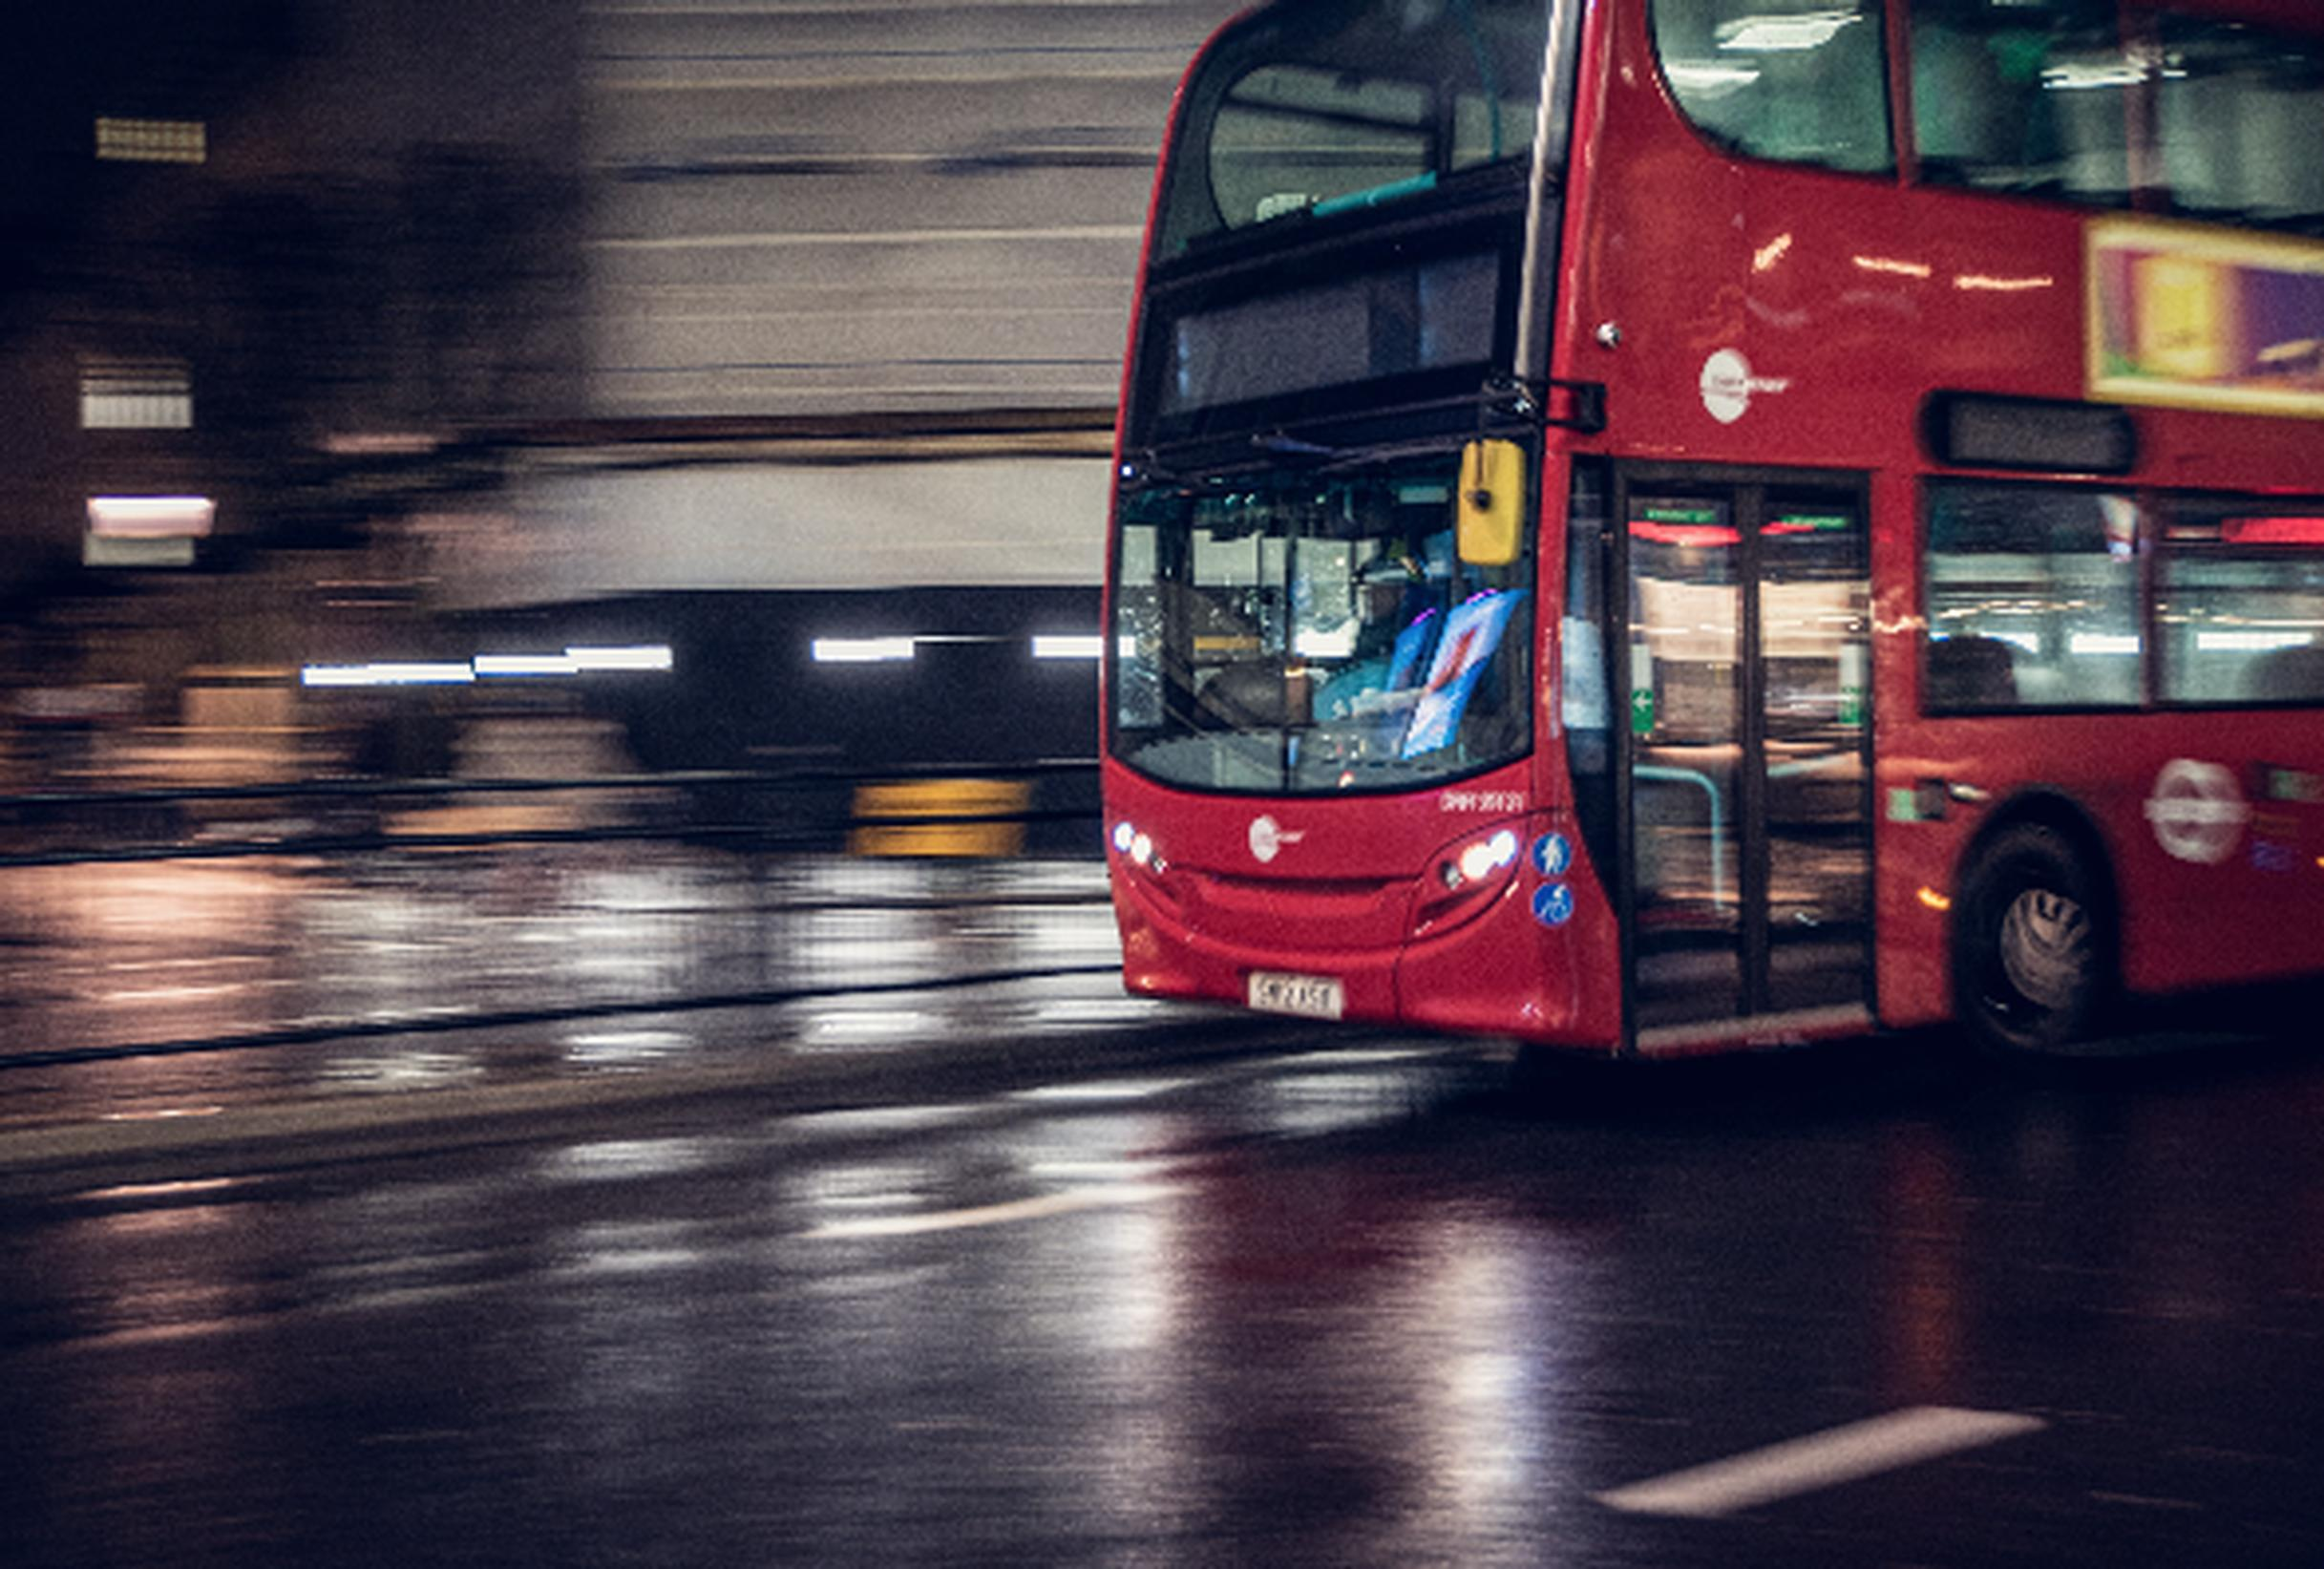 Buses are running in London during the pandemic (Leandro Mazzuquini/Unsplash)